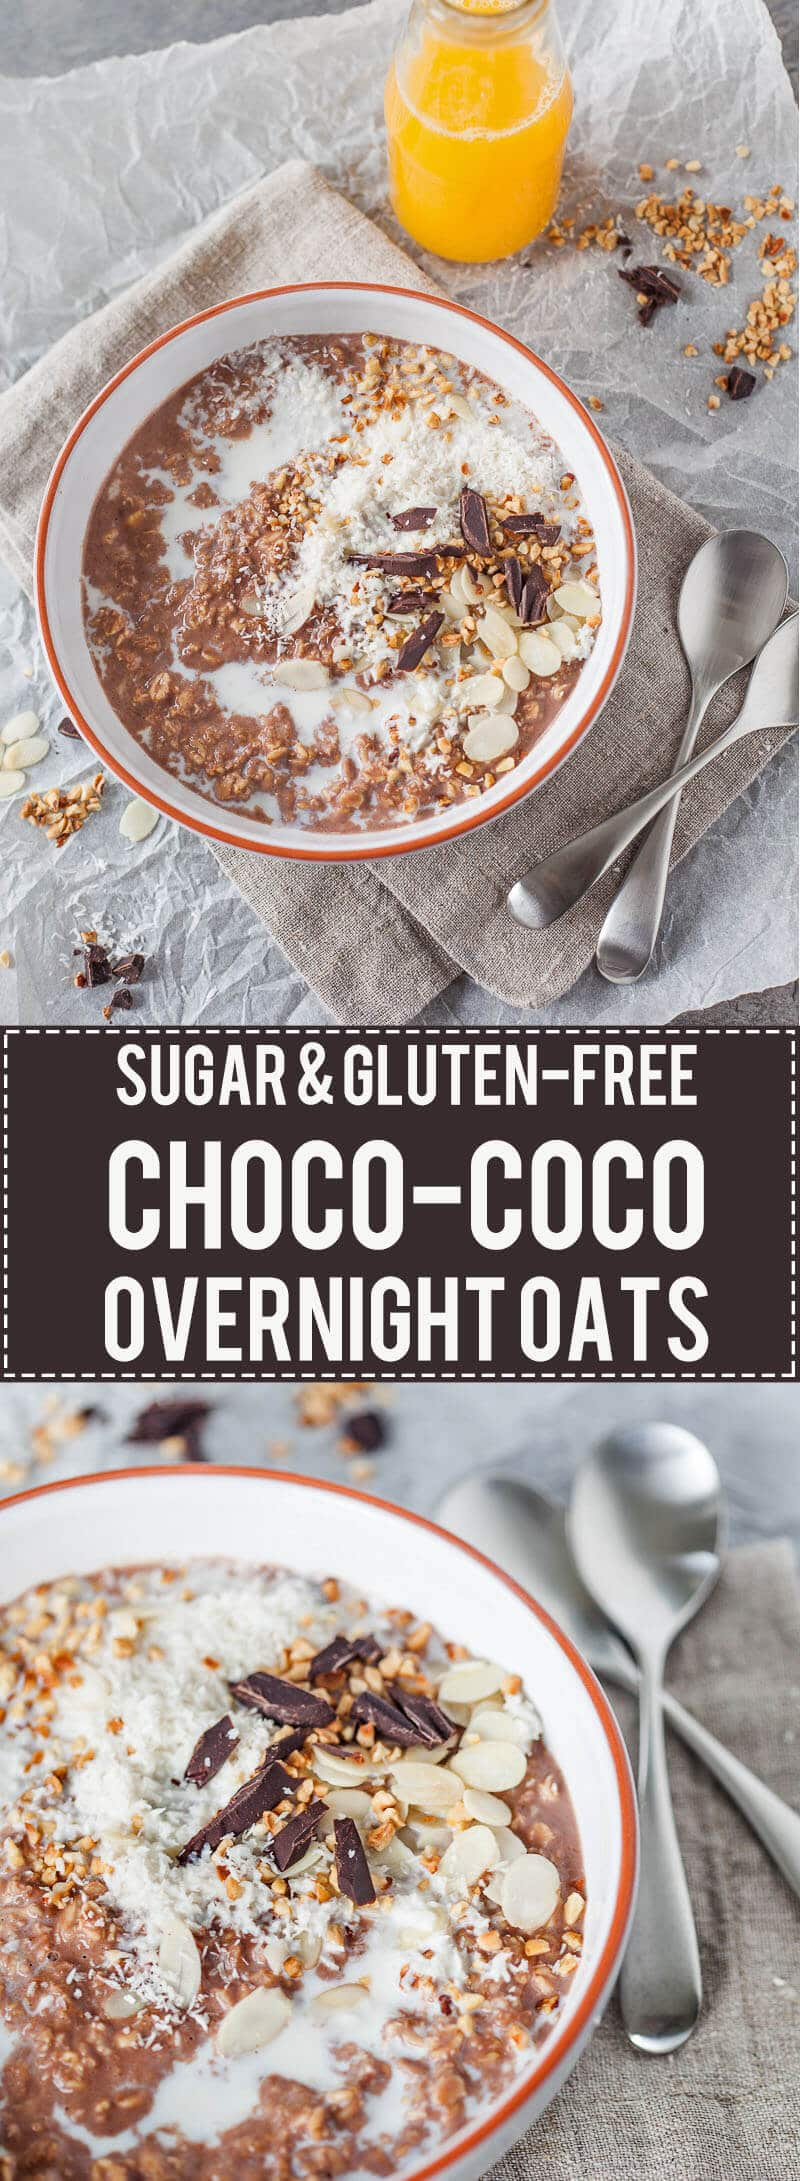 Guilt-free morning pleasure, this Sugar-free Choco-Coco Overnight Oats recipe is simply delicious. Gluten-free and healthy! | www.vibrantplate.com